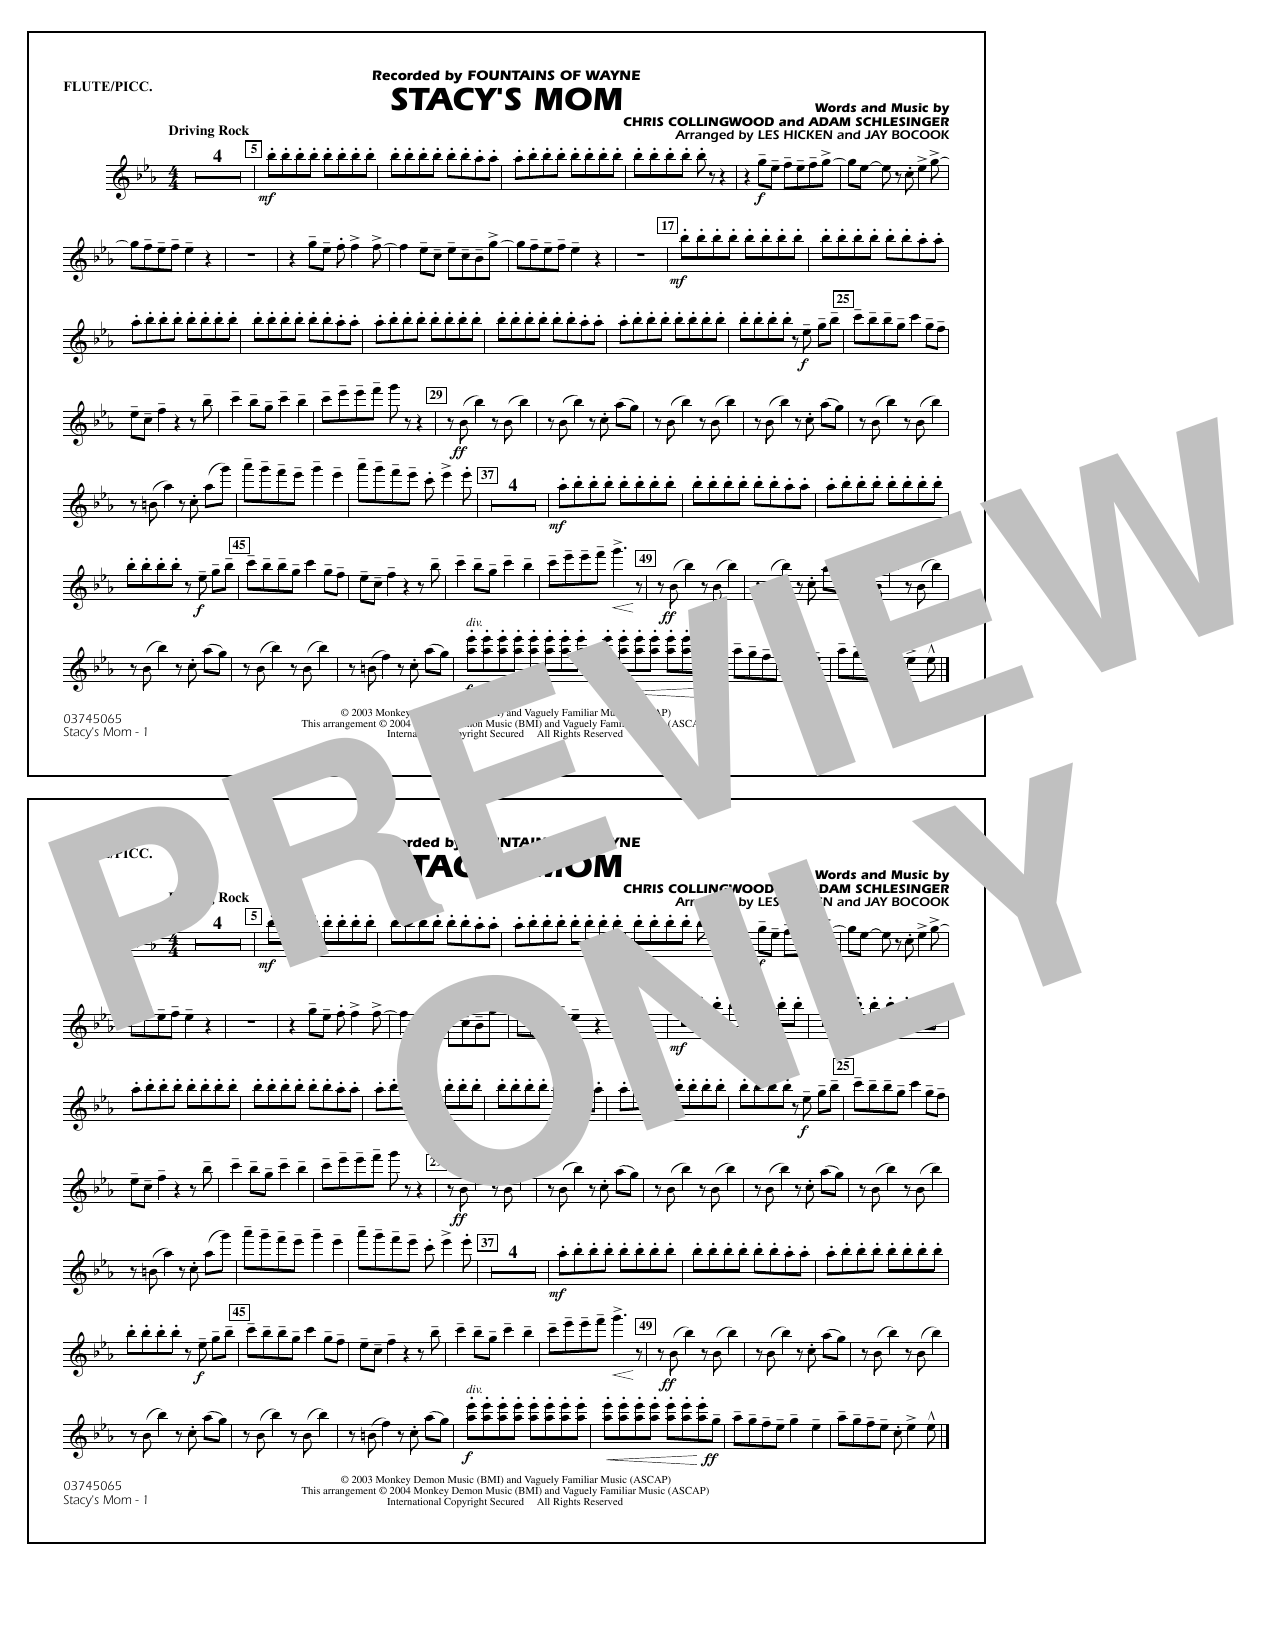 Fountains Of Wayne Stacy's Mom (arr. Les Hicken and Jay Bocook) - Flute/Piccolo sheet music notes and chords. Download Printable PDF.